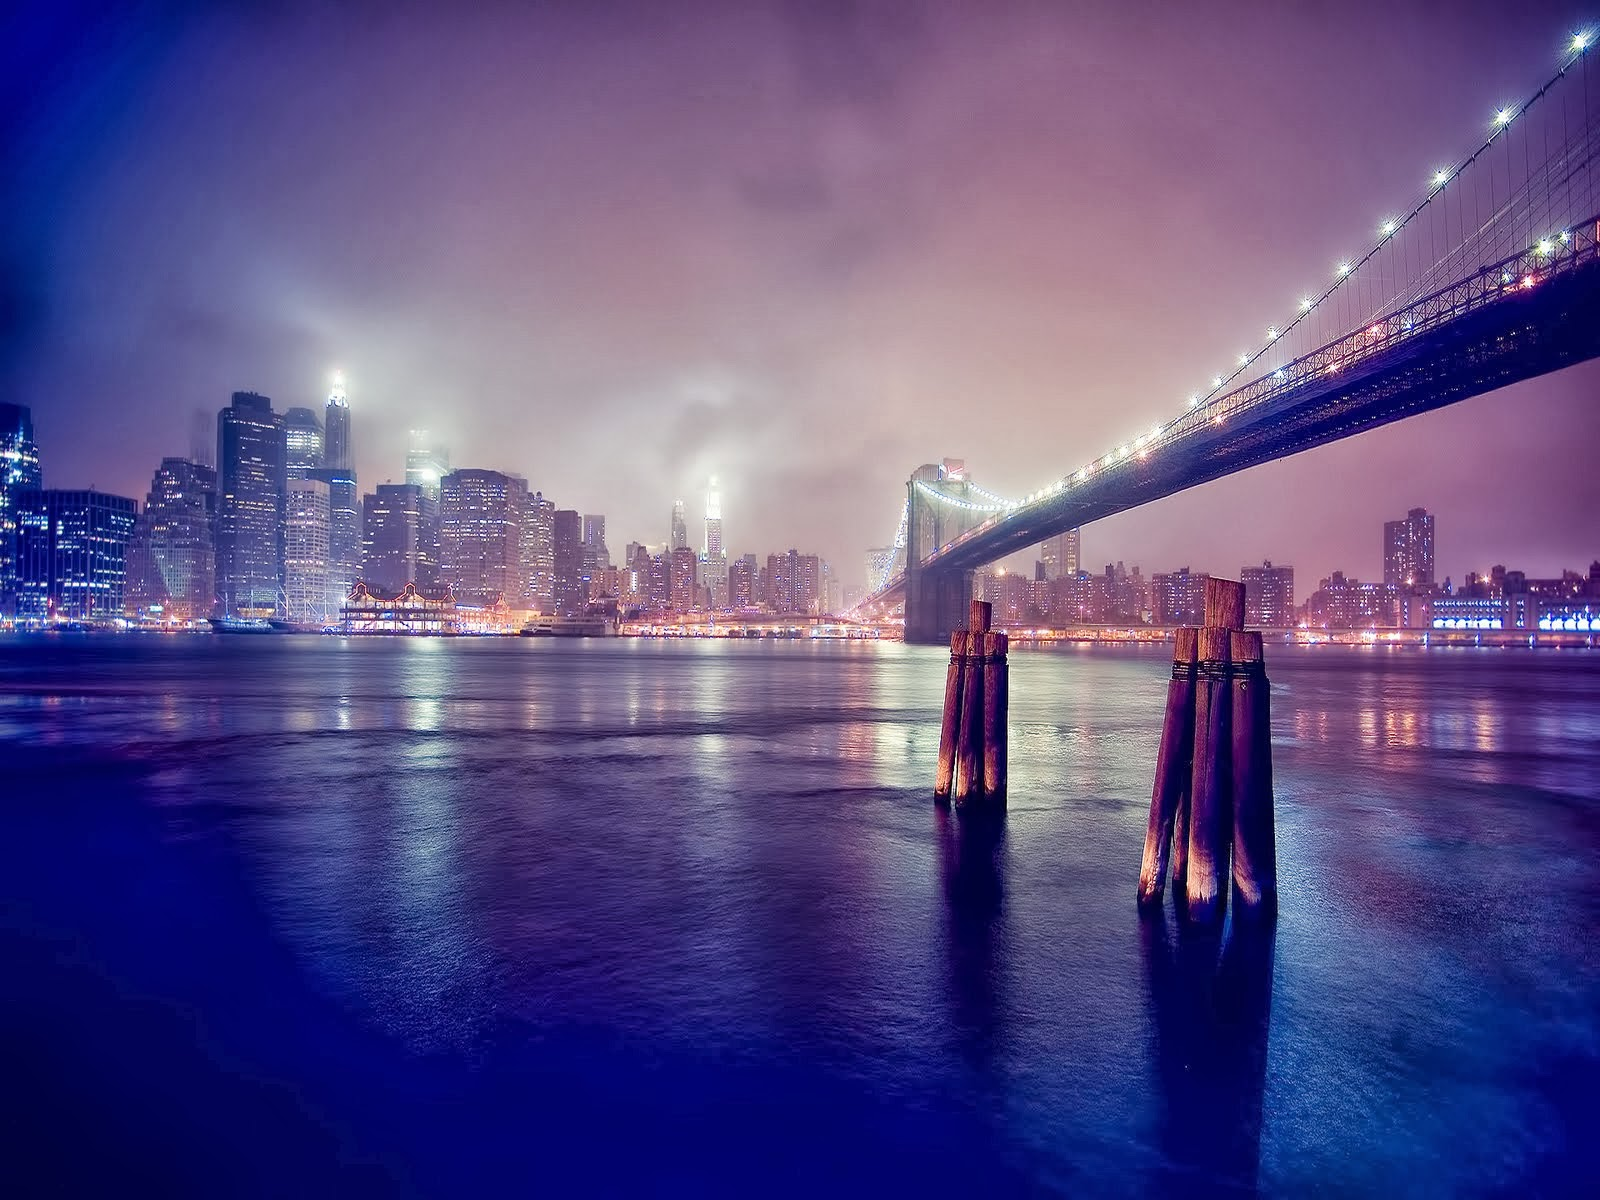 City HD Wallpapers Free Download